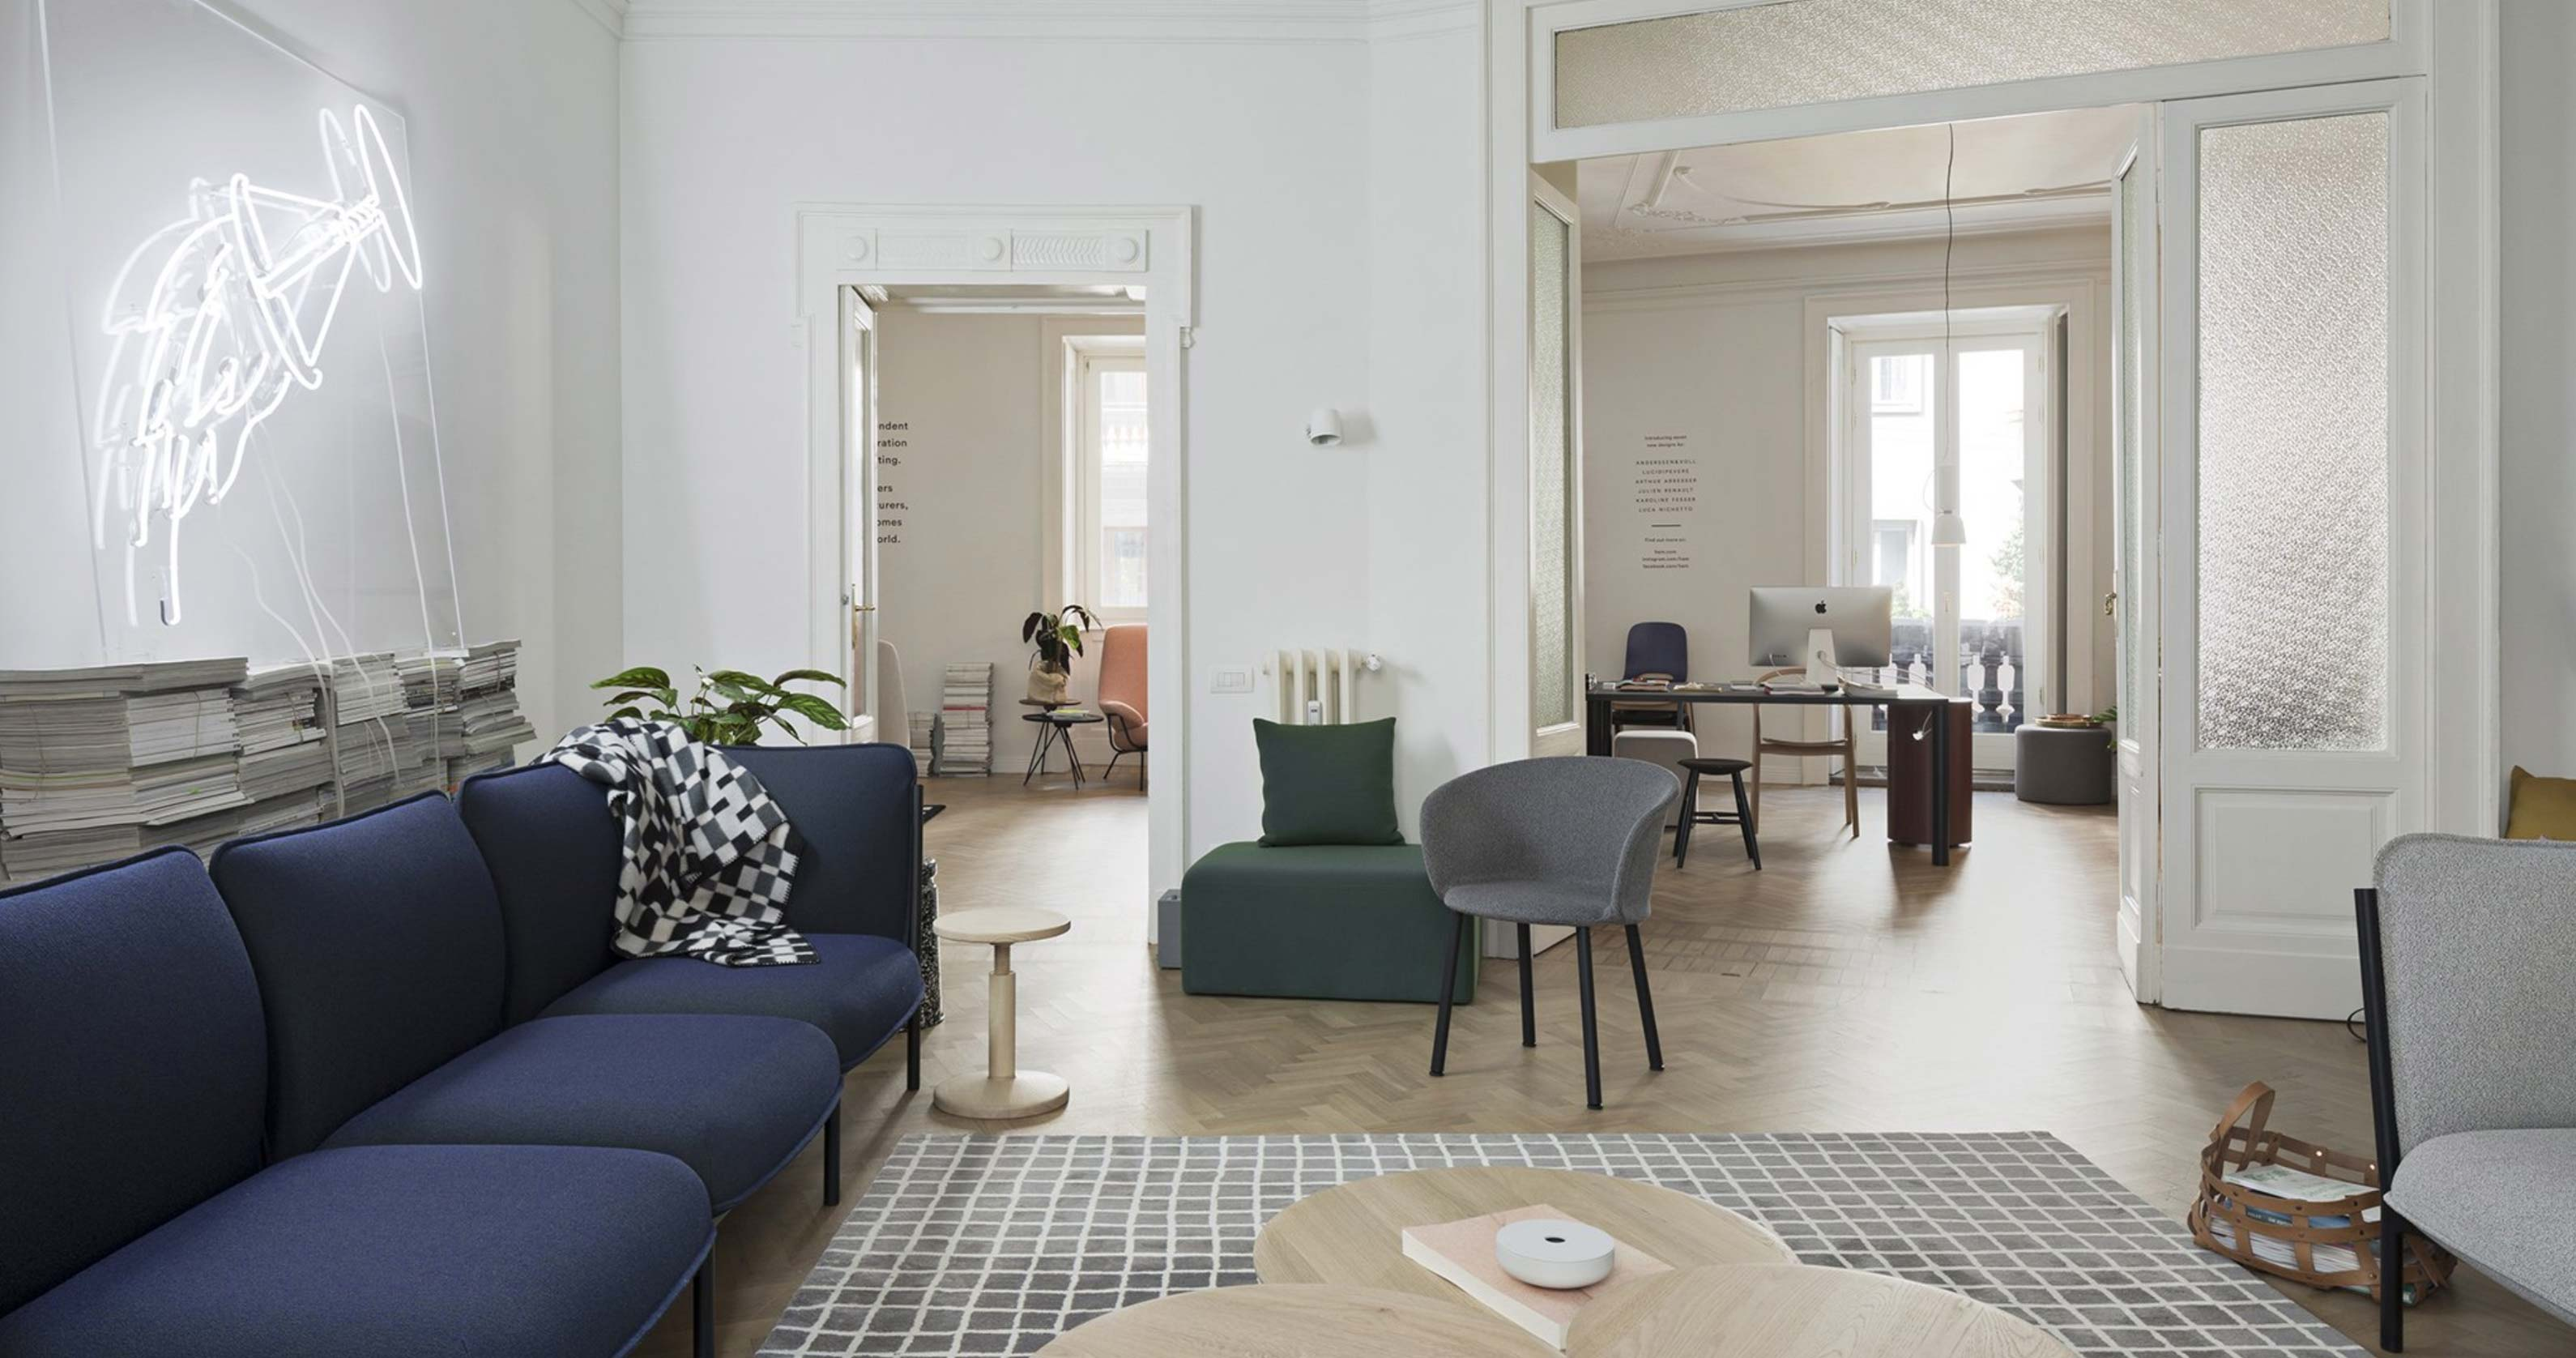 How To Create A Minimalist Family Home In 5 Easy Steps